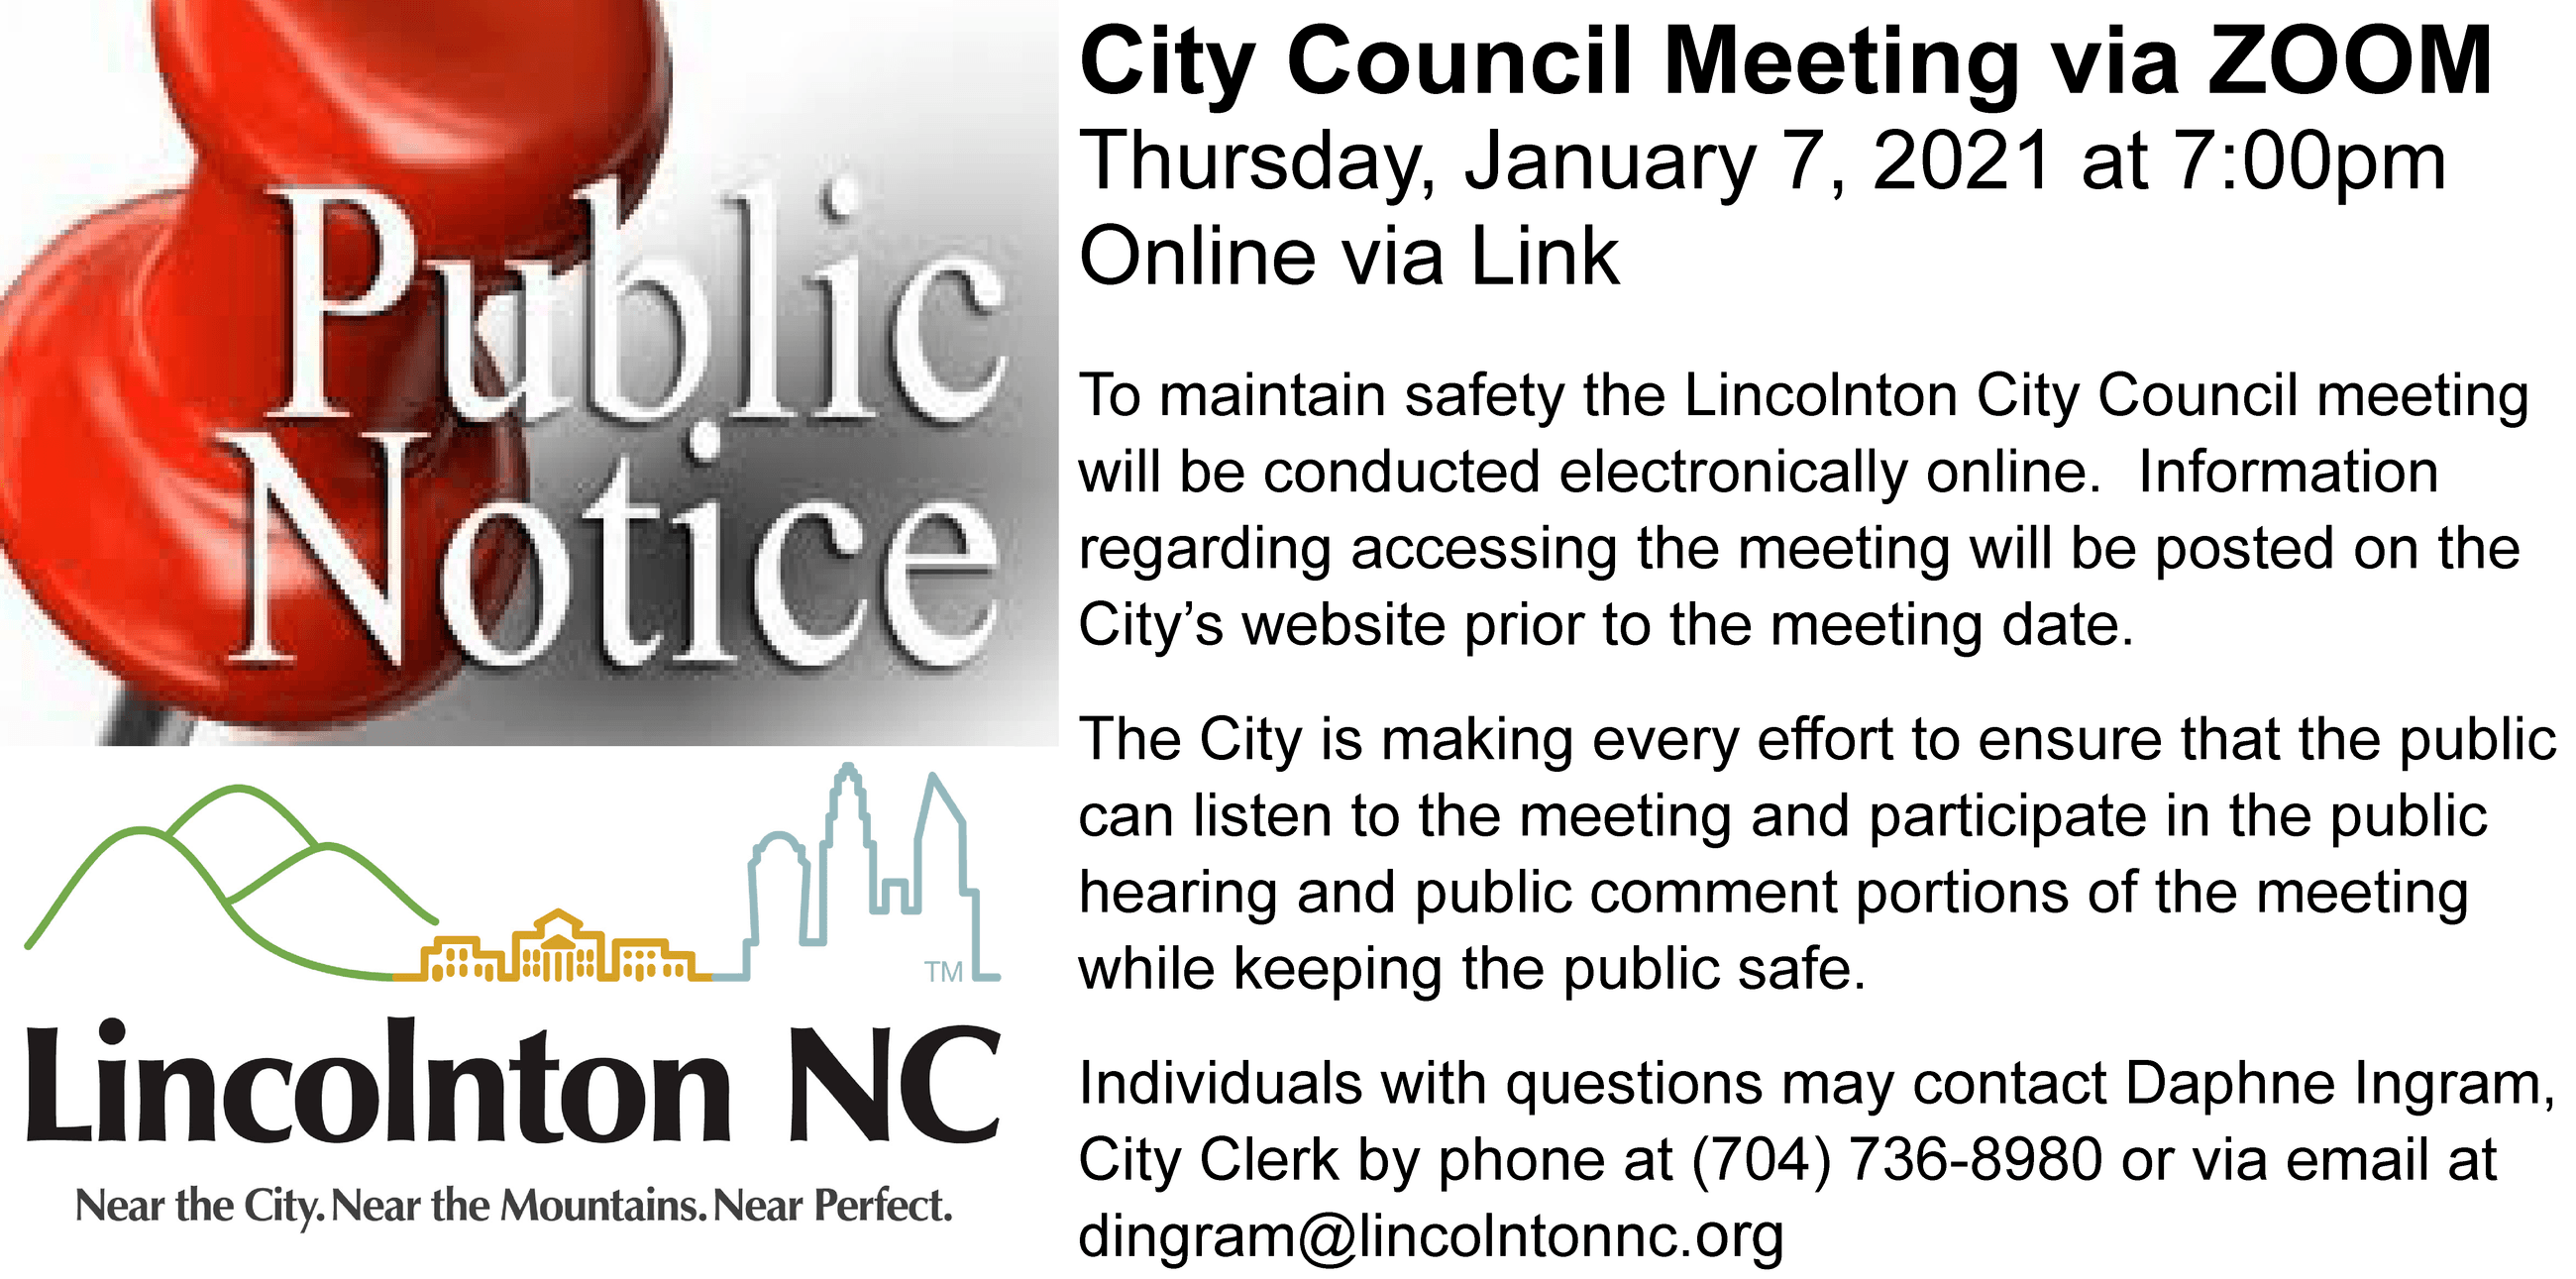 2020.12.31 public notice - 2021.01.07 council mtg virtual